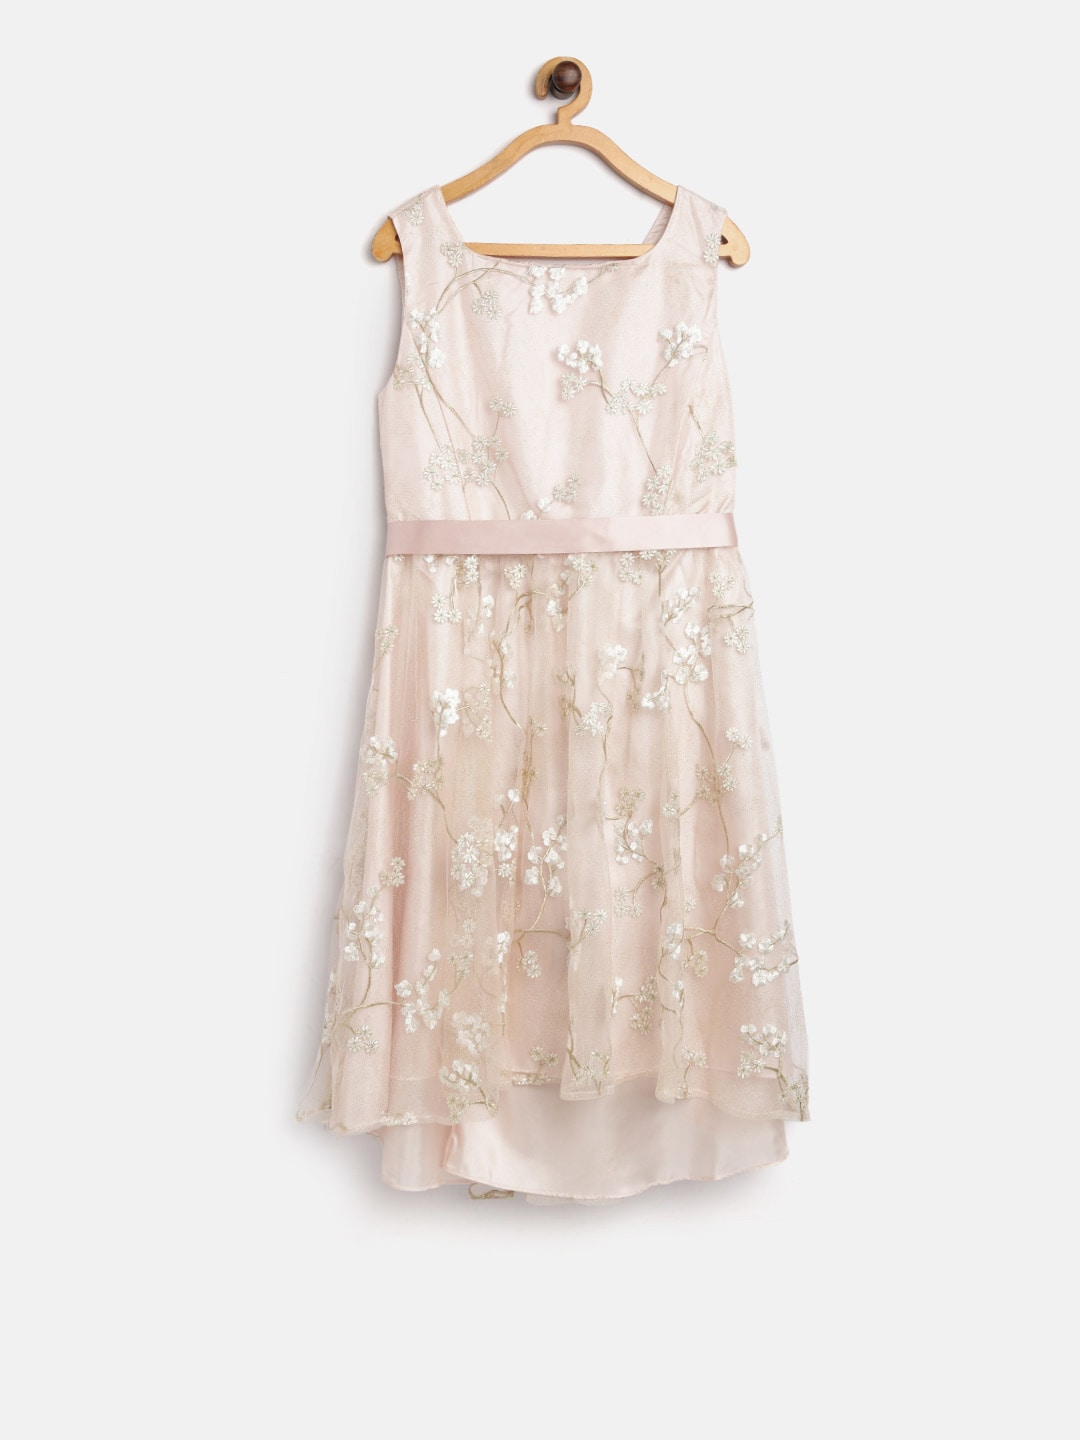 MONSOON CHILDREN Girls Peach-Coloured Embroidered Shimmer Fit and Flare  Dress